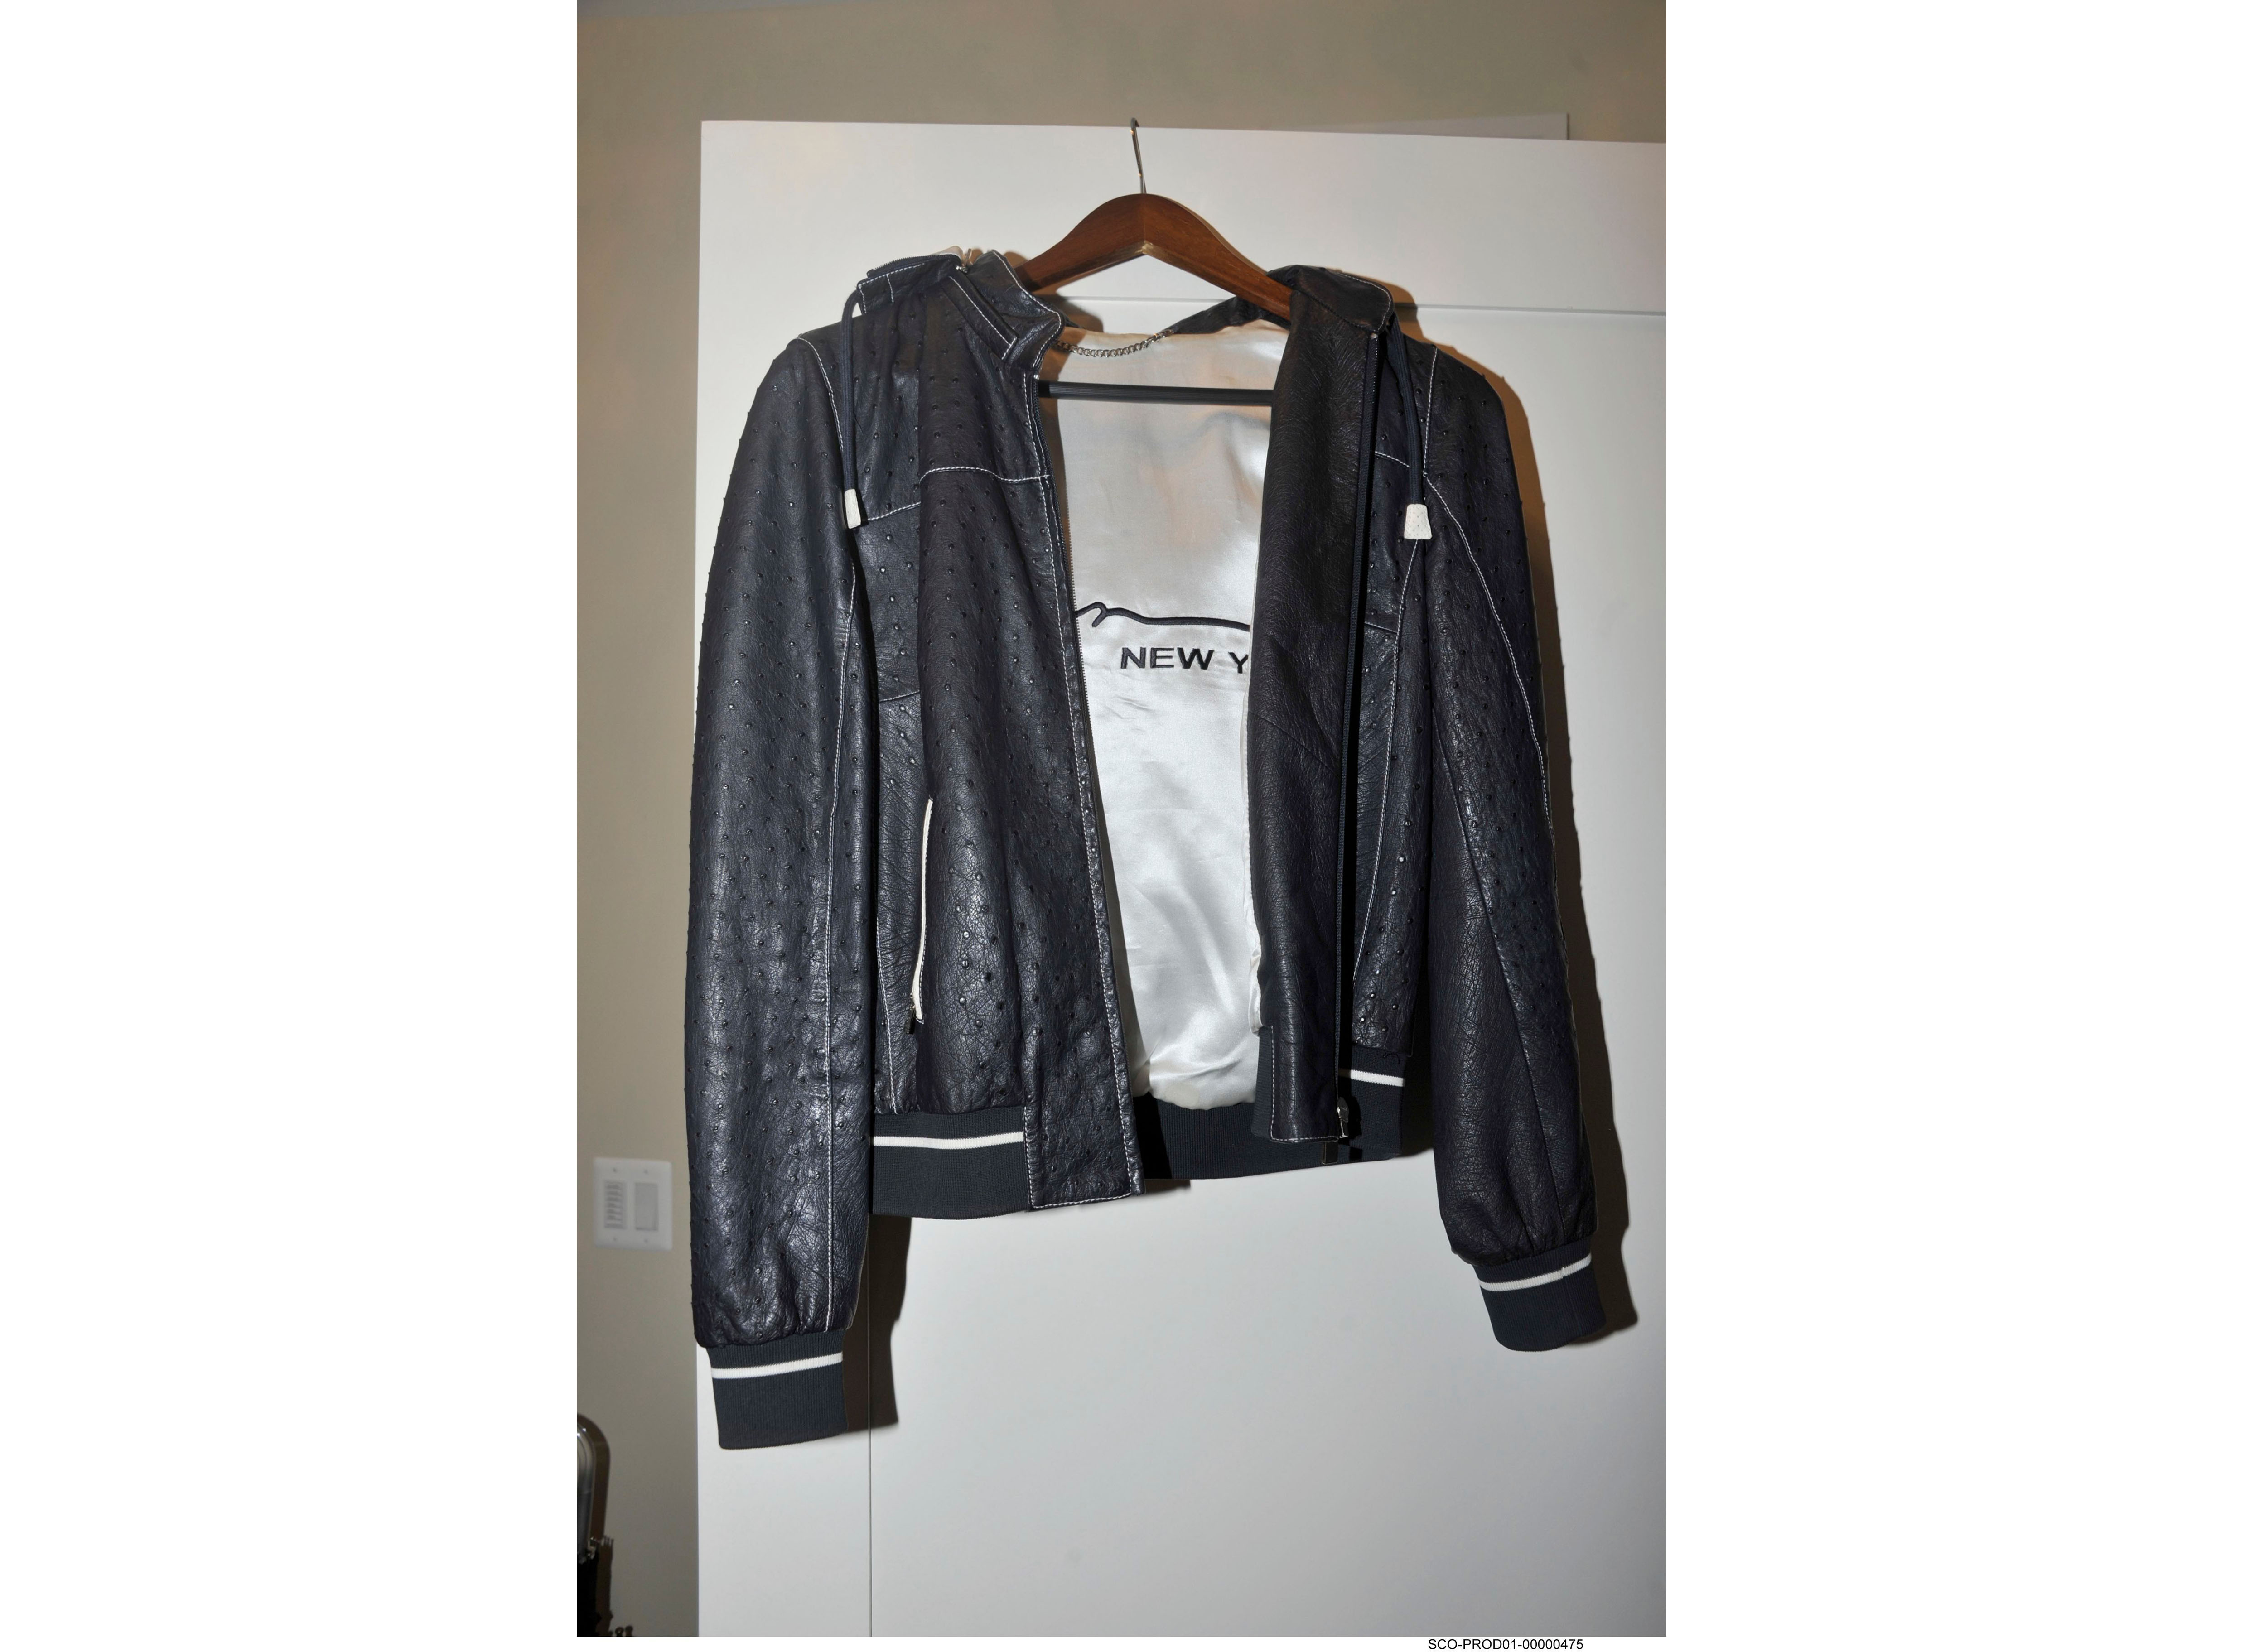 This photo provided by the Department of Justice was introduced into evidence by the government, during the second day of the fraud trial of former Trump campaign chairman Paul Manafort in federal court in Alexandria, Va., shows Manafort's $15,000 jacket made of ostrich on Aug. 1, 2018.